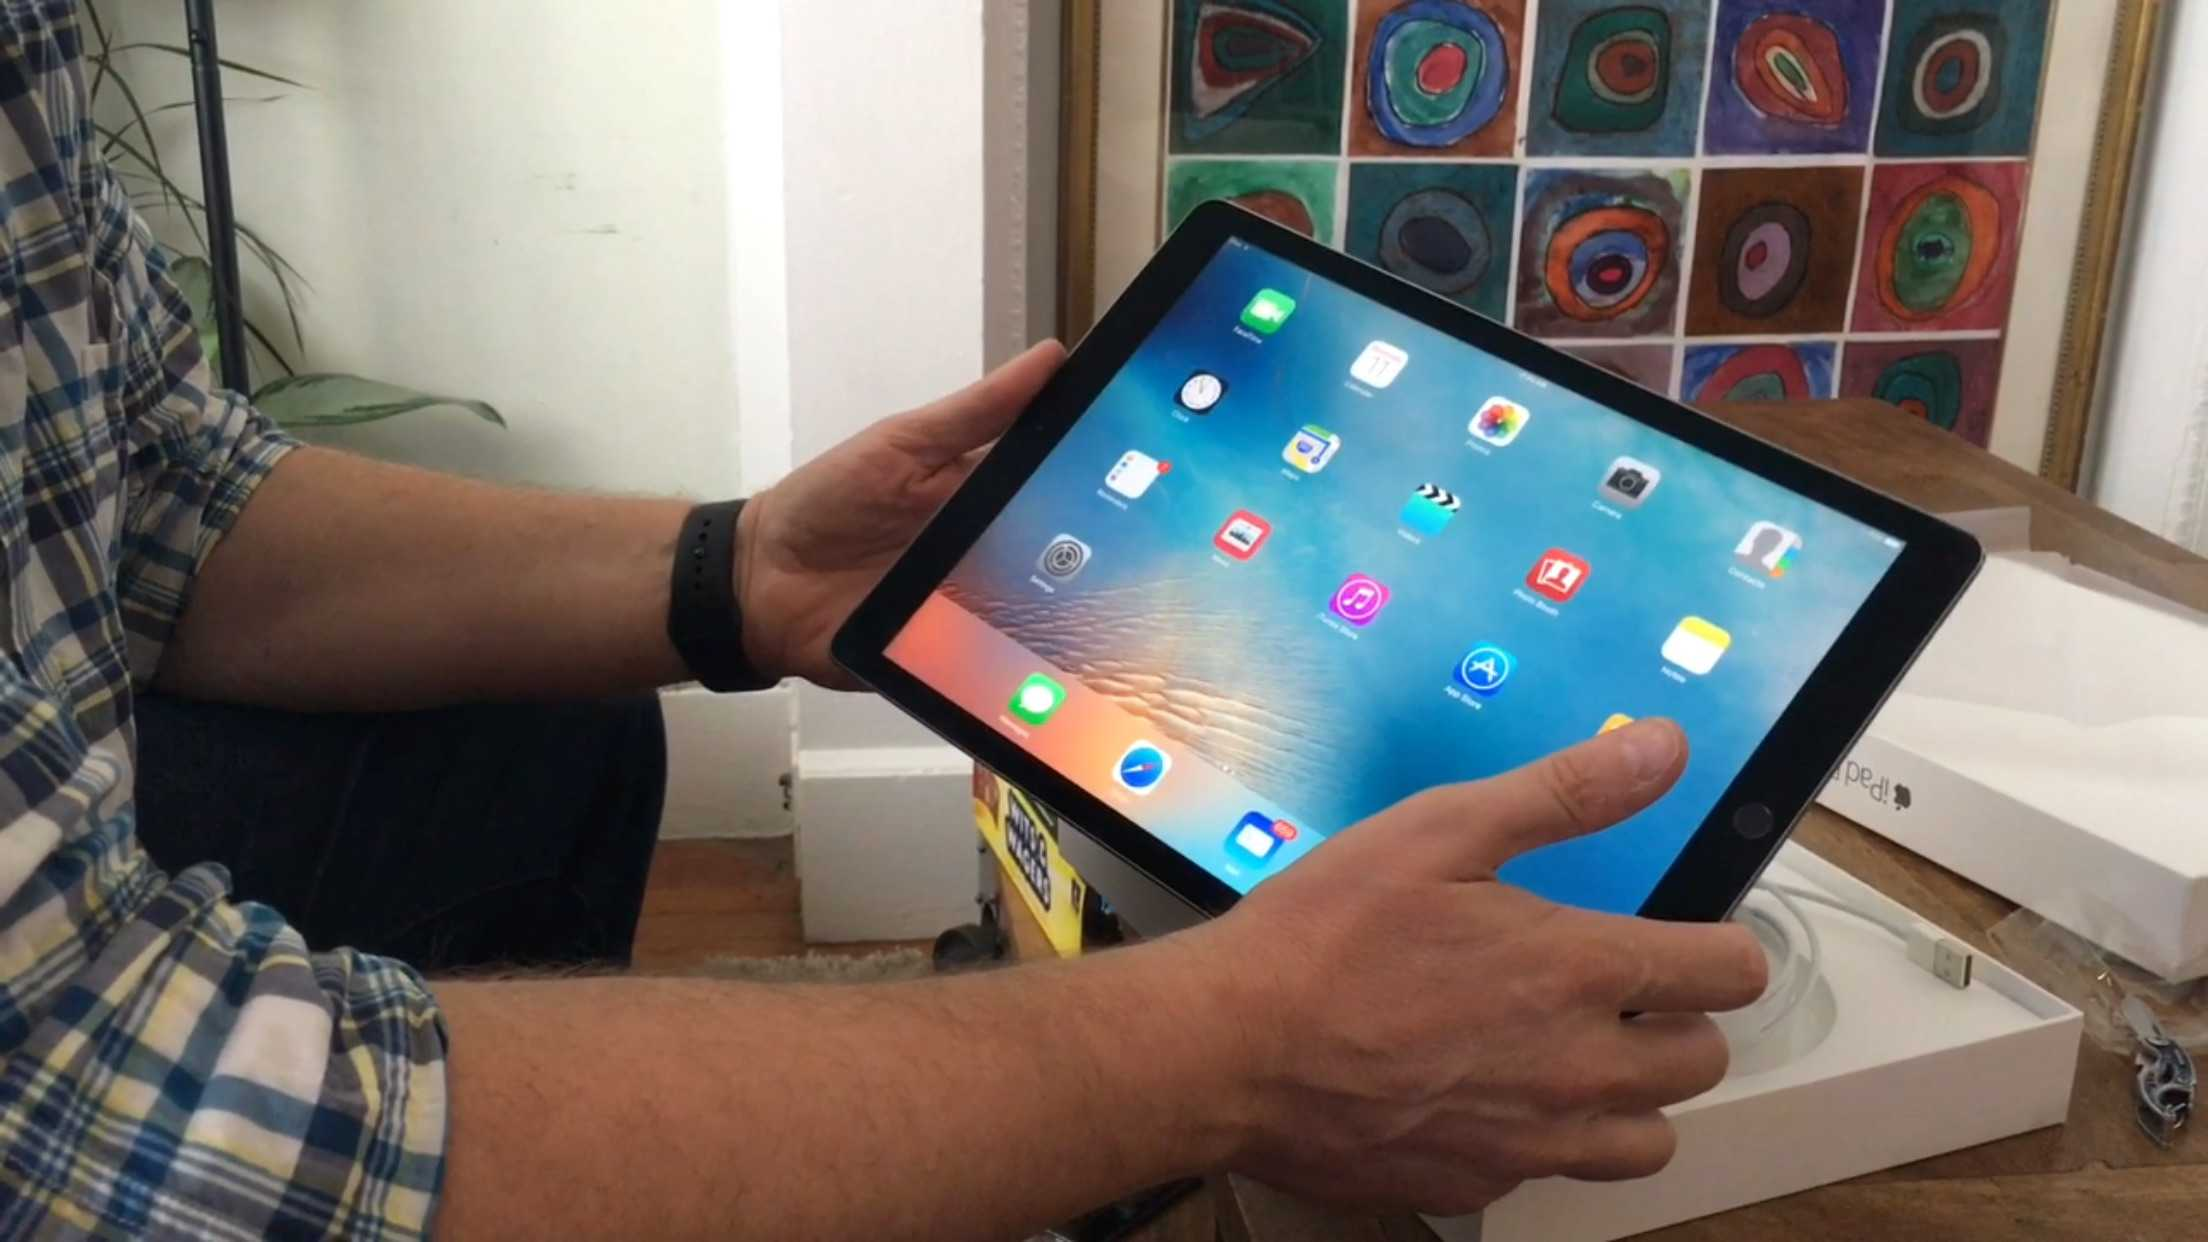 Big and hot: the iPad Pro is the BBW of tablets.